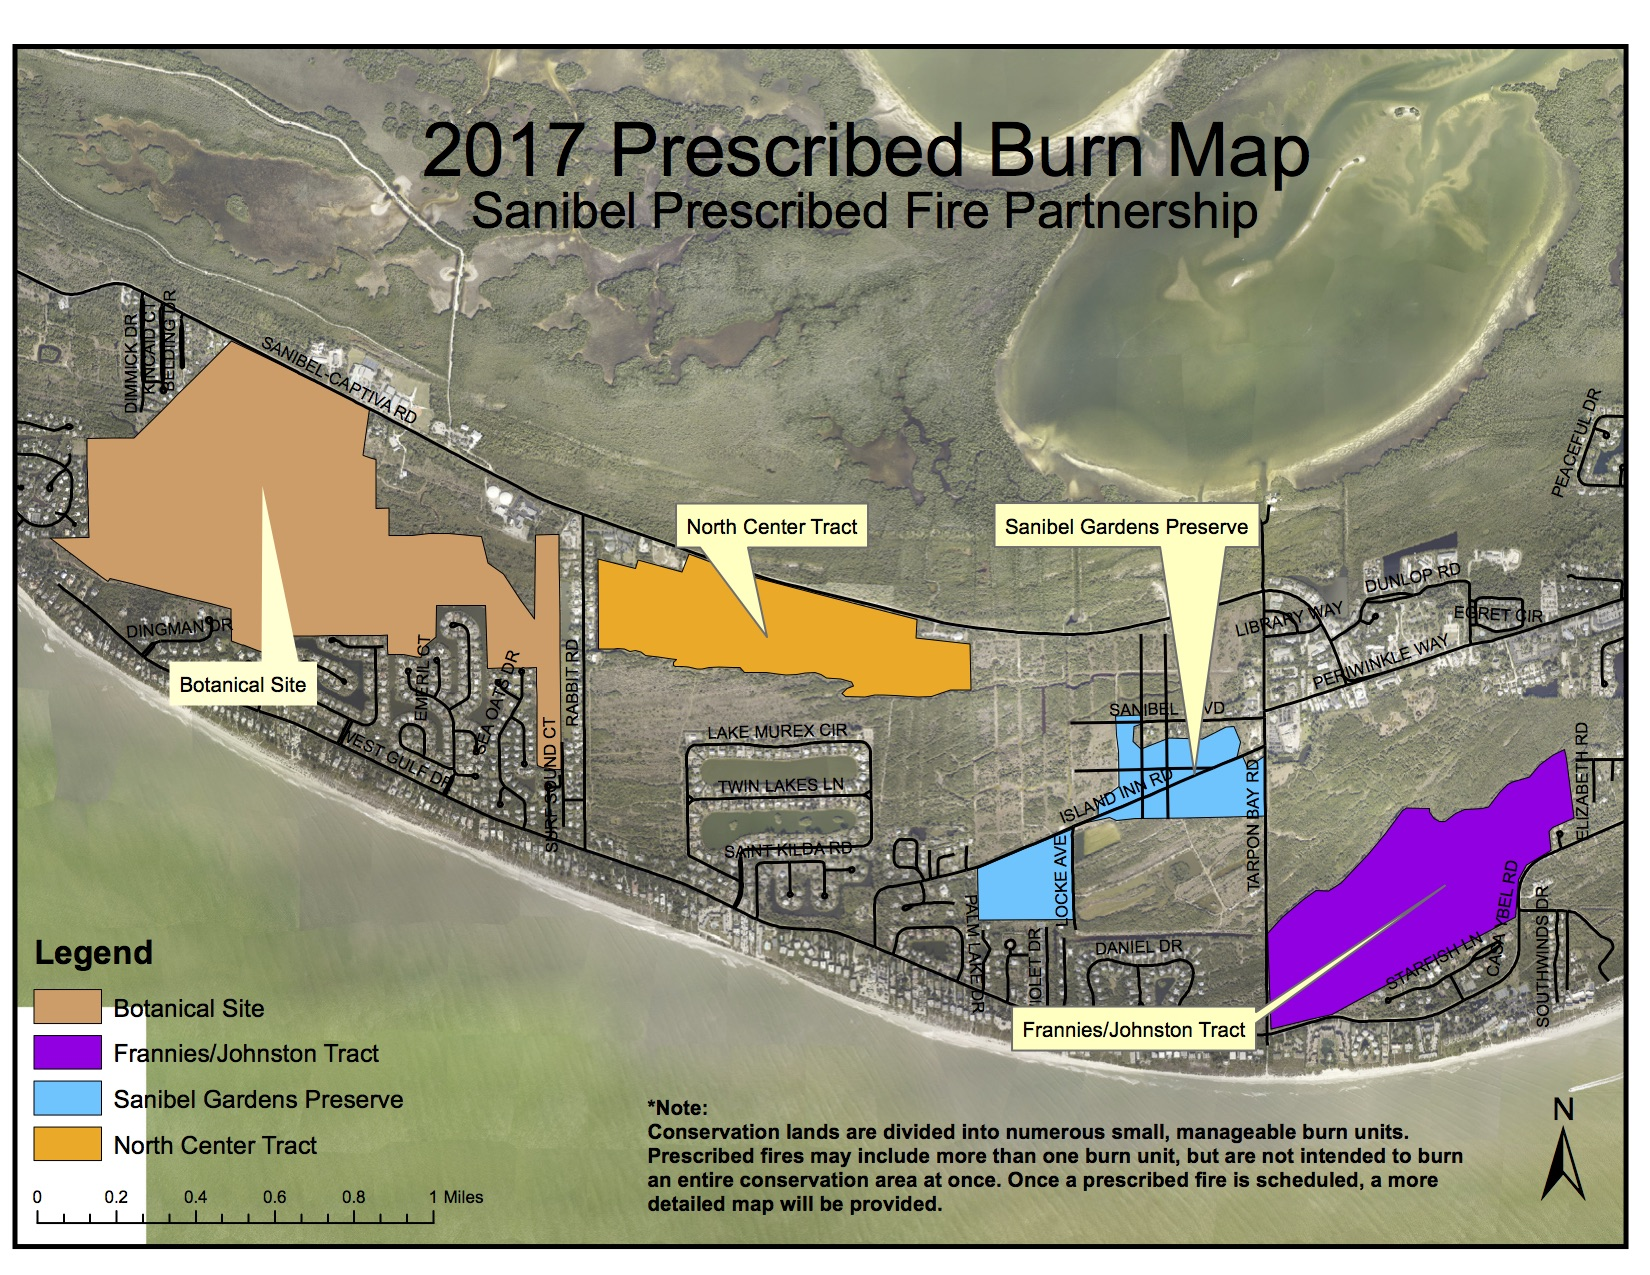 2017 Sanibel Prescribed Burn Map: Conservation lands are divided into numerous small, manageable burn units. Prescribed fires may include more than one burn unit, but are not intended to burn an entire conservation area at once. Once a prescribed fire is scheduled, a more detailed map will be provided. Courtesy Of City Of Sanibel.